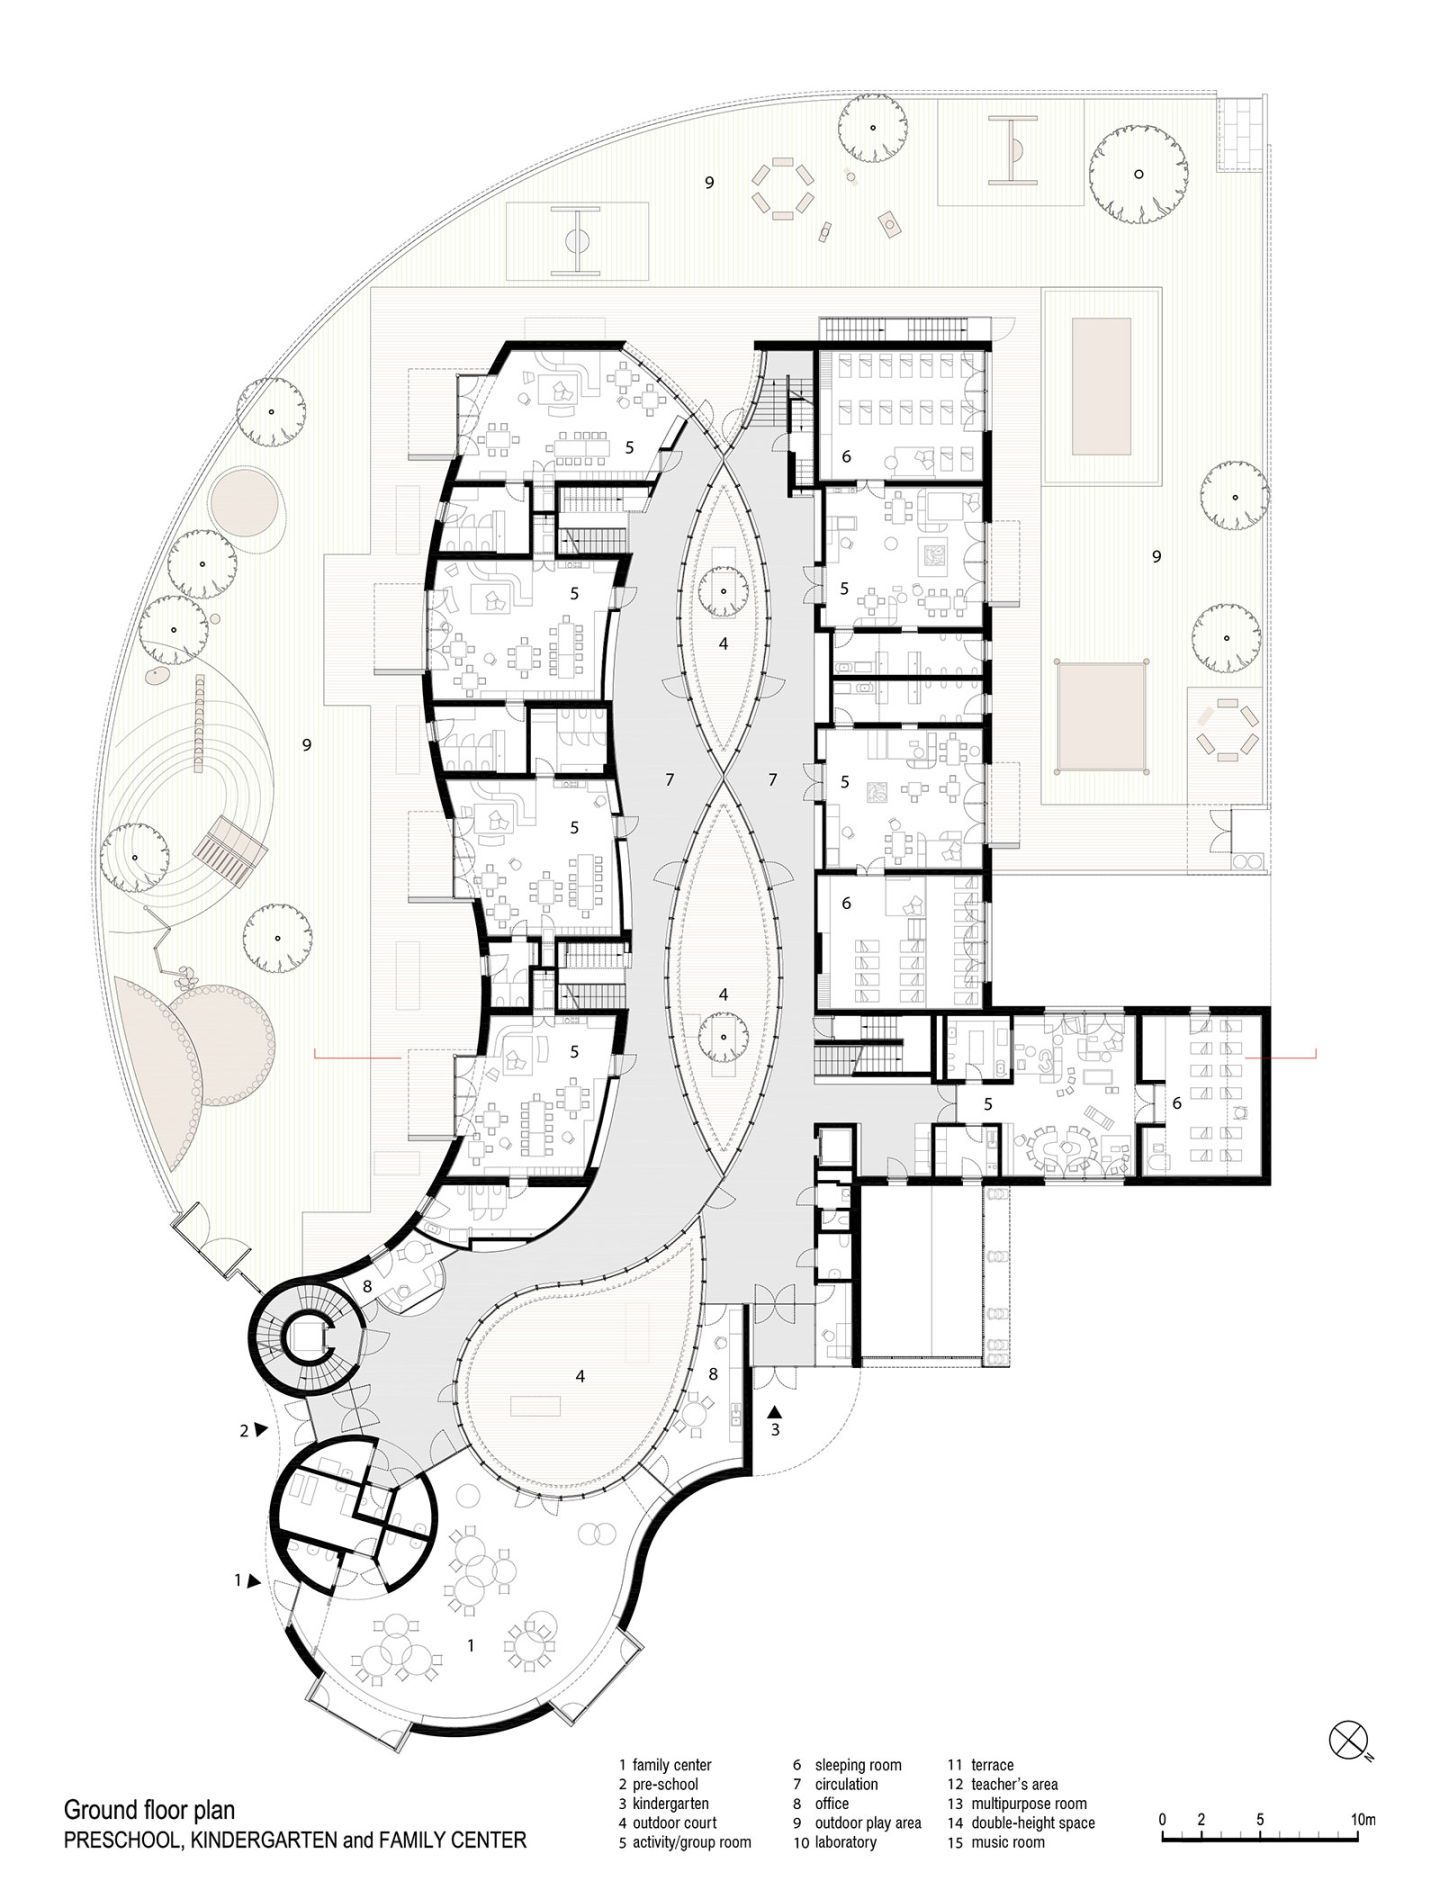 Modus Architects Preschool Kindergarten And Family Center Divisare School Building Design School Floor Plan Office Floor Plan